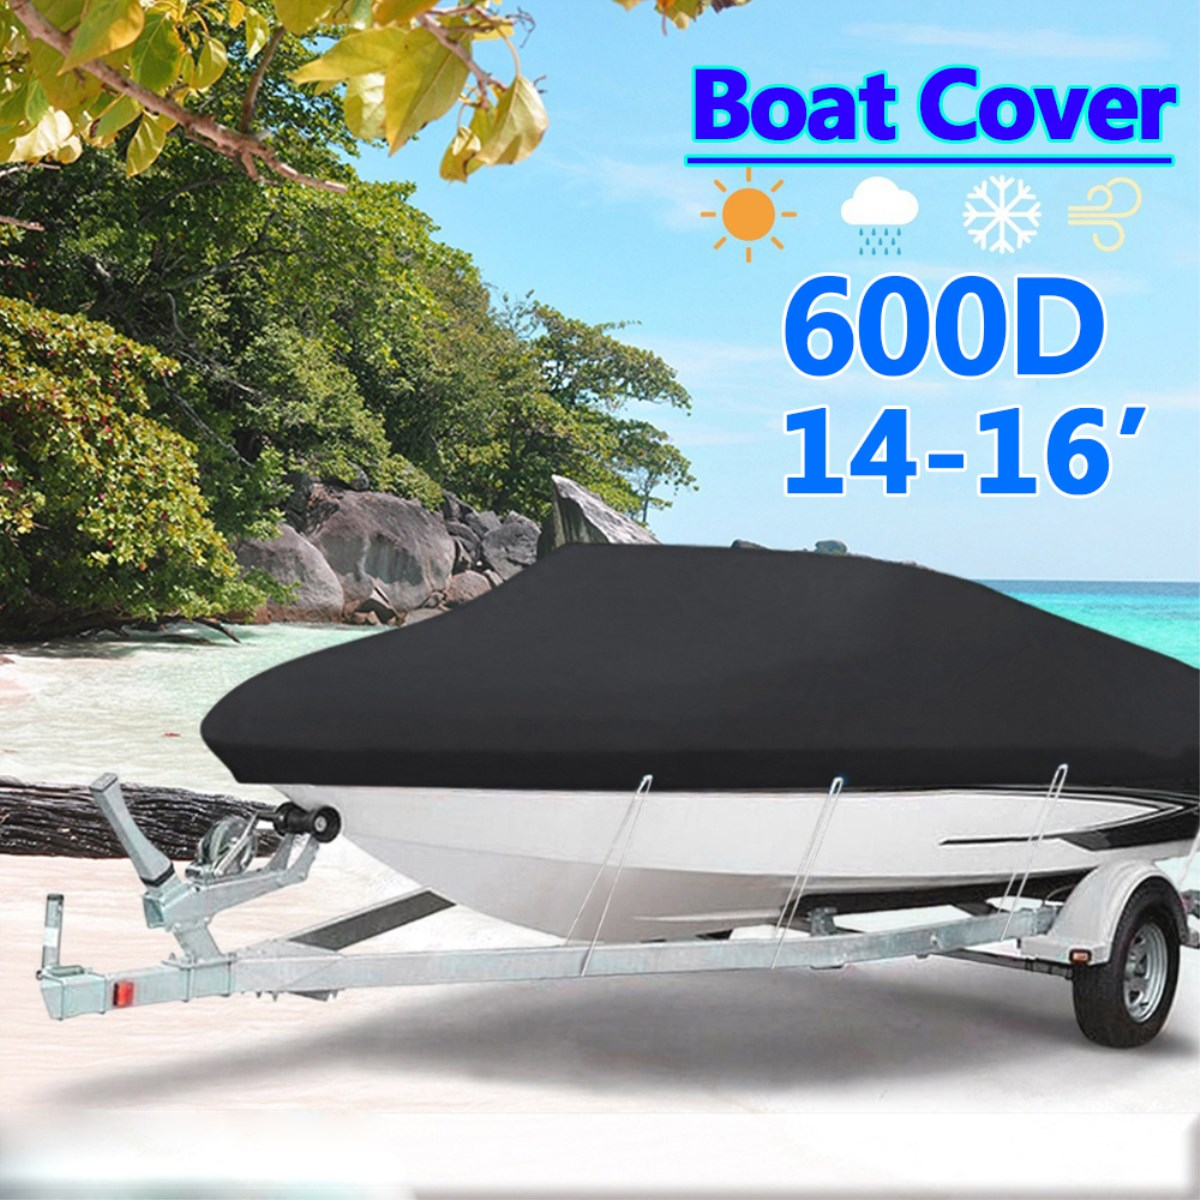 Black Heavy Duty 14-16ft 600D Beam 90inch Trailerable Marine Grade Boat Cover for Yacht Boat Waterproof Anti-UV Boat Accessories heavy duty 60v 600a marine dual battery selector switch for boat rv semi motor yacht boats red abd black page 3